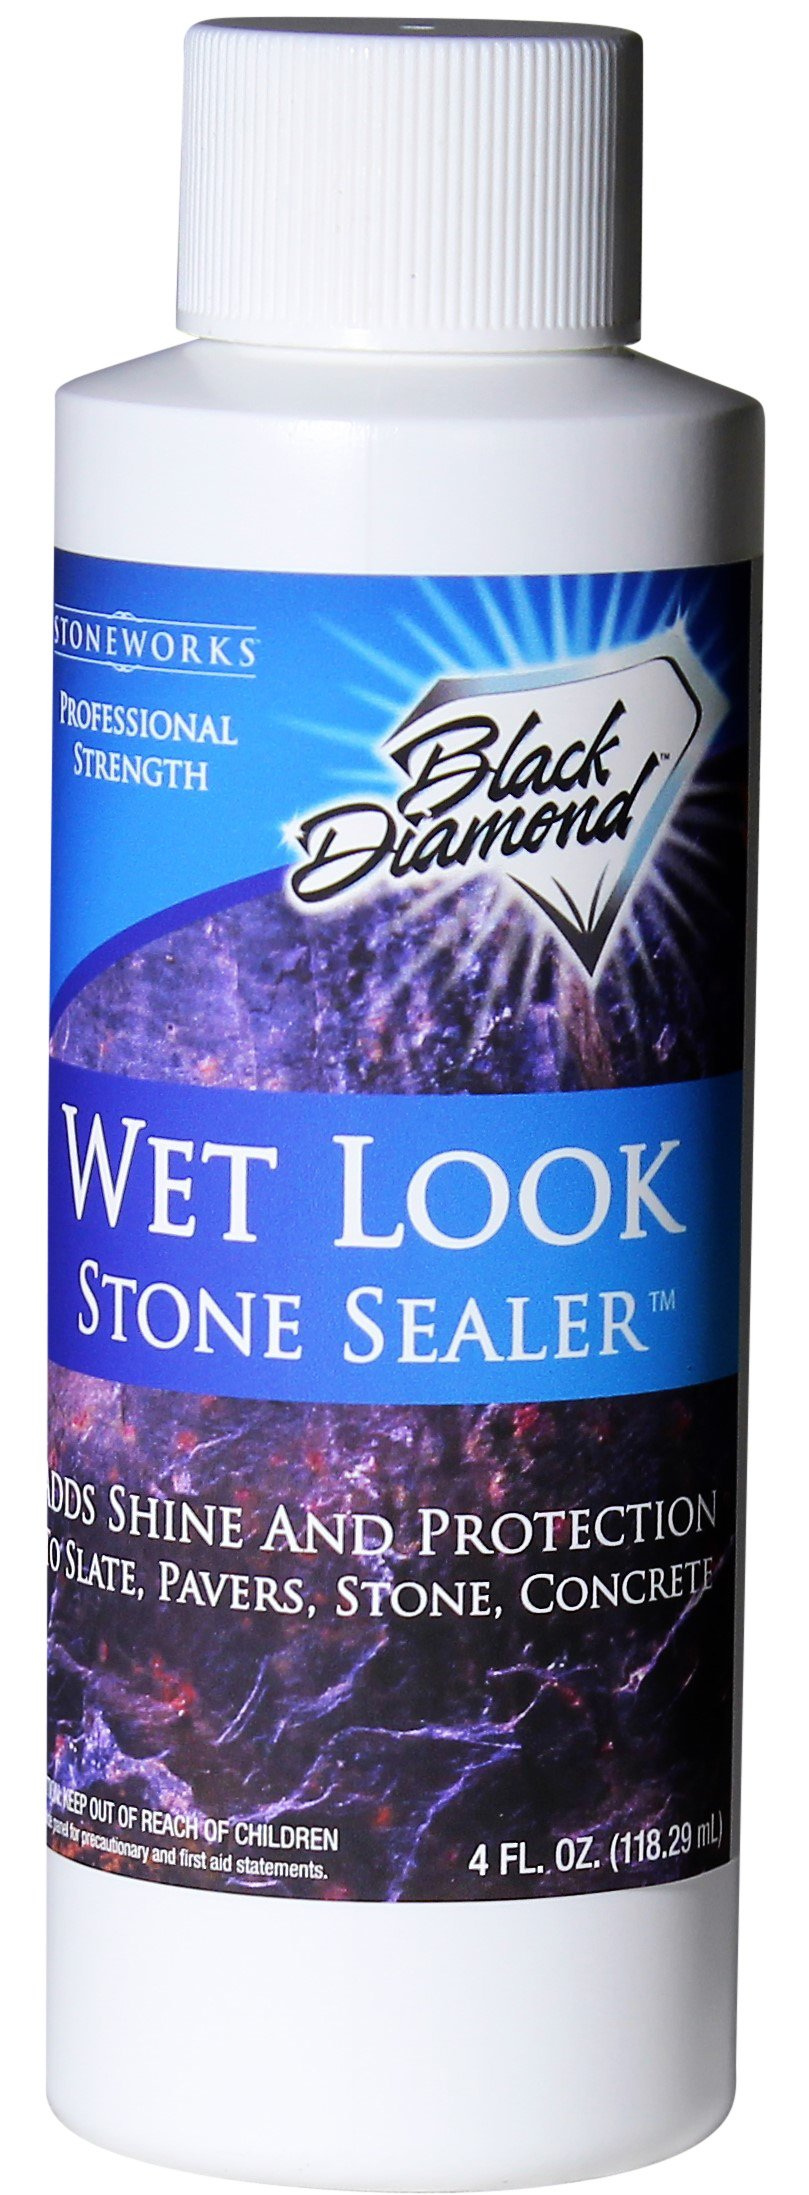 Black Diamond Stoneworks Wet Look Natural Stone Sealer Provides Durable Gloss and Protection to: Slate, Concrete, Brick, Sandstone, Driveways, Garage Floors. Interior or Exterior. Trial